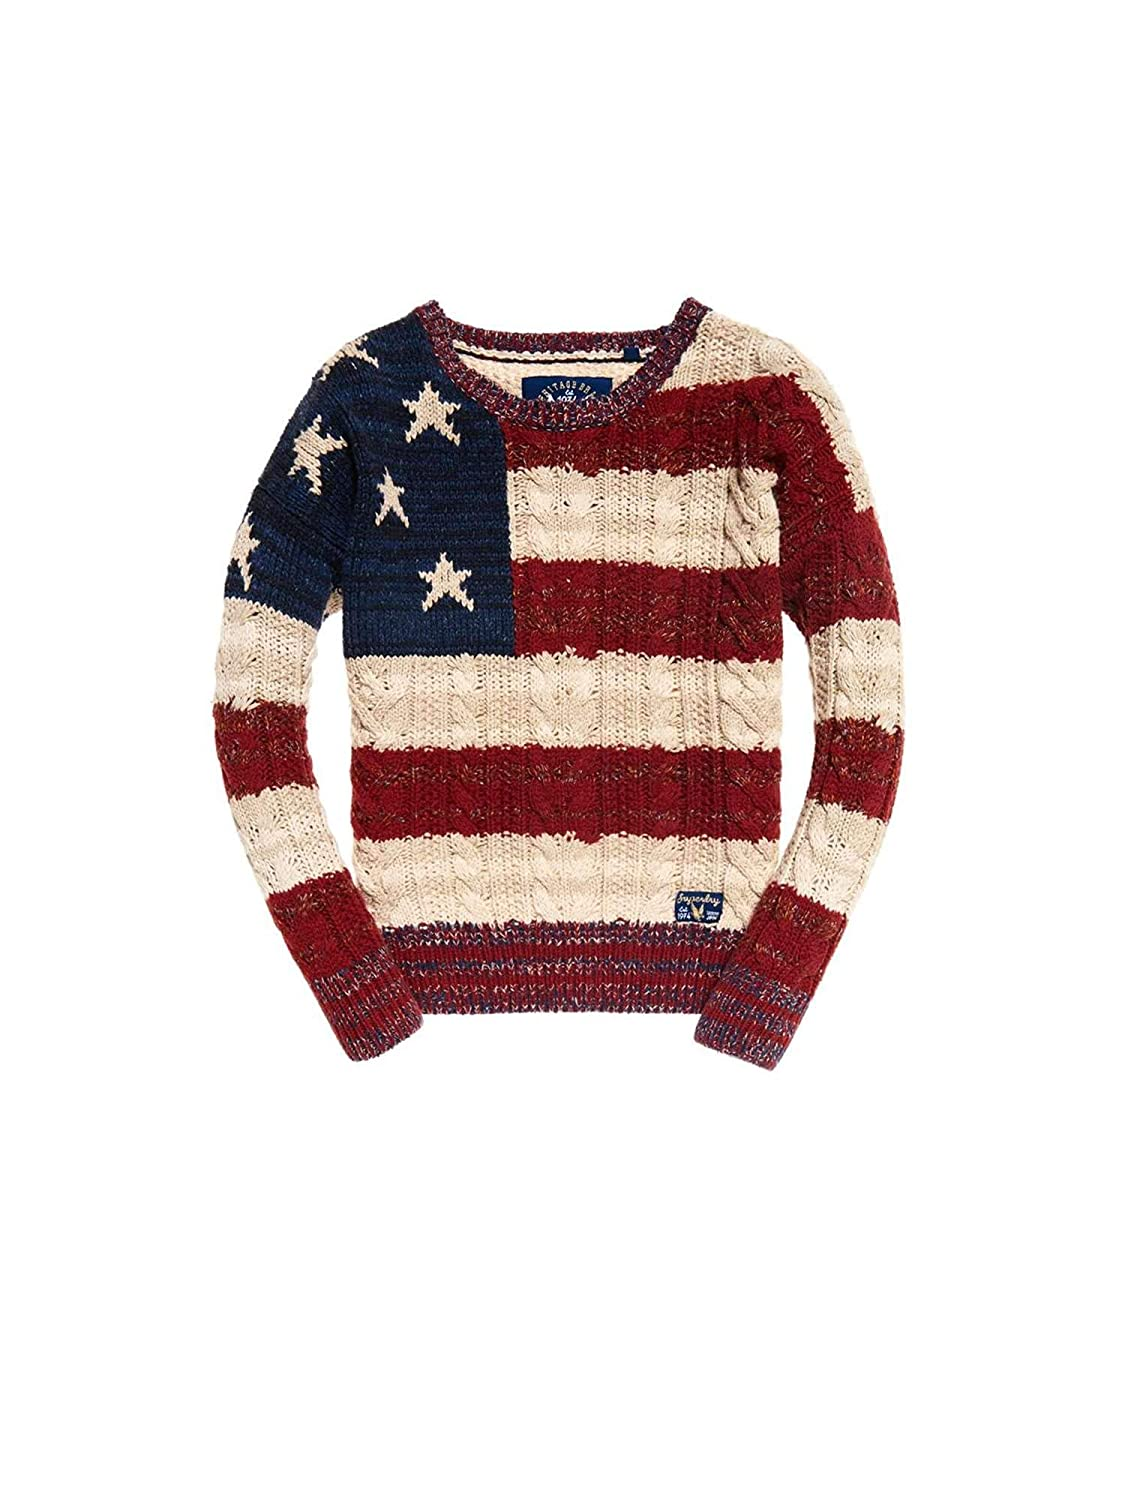 8444f87ed Superdry Americana Cable Knit Knits Large Navy Burnt Red Ecru   Amazon.co.uk  Clothing